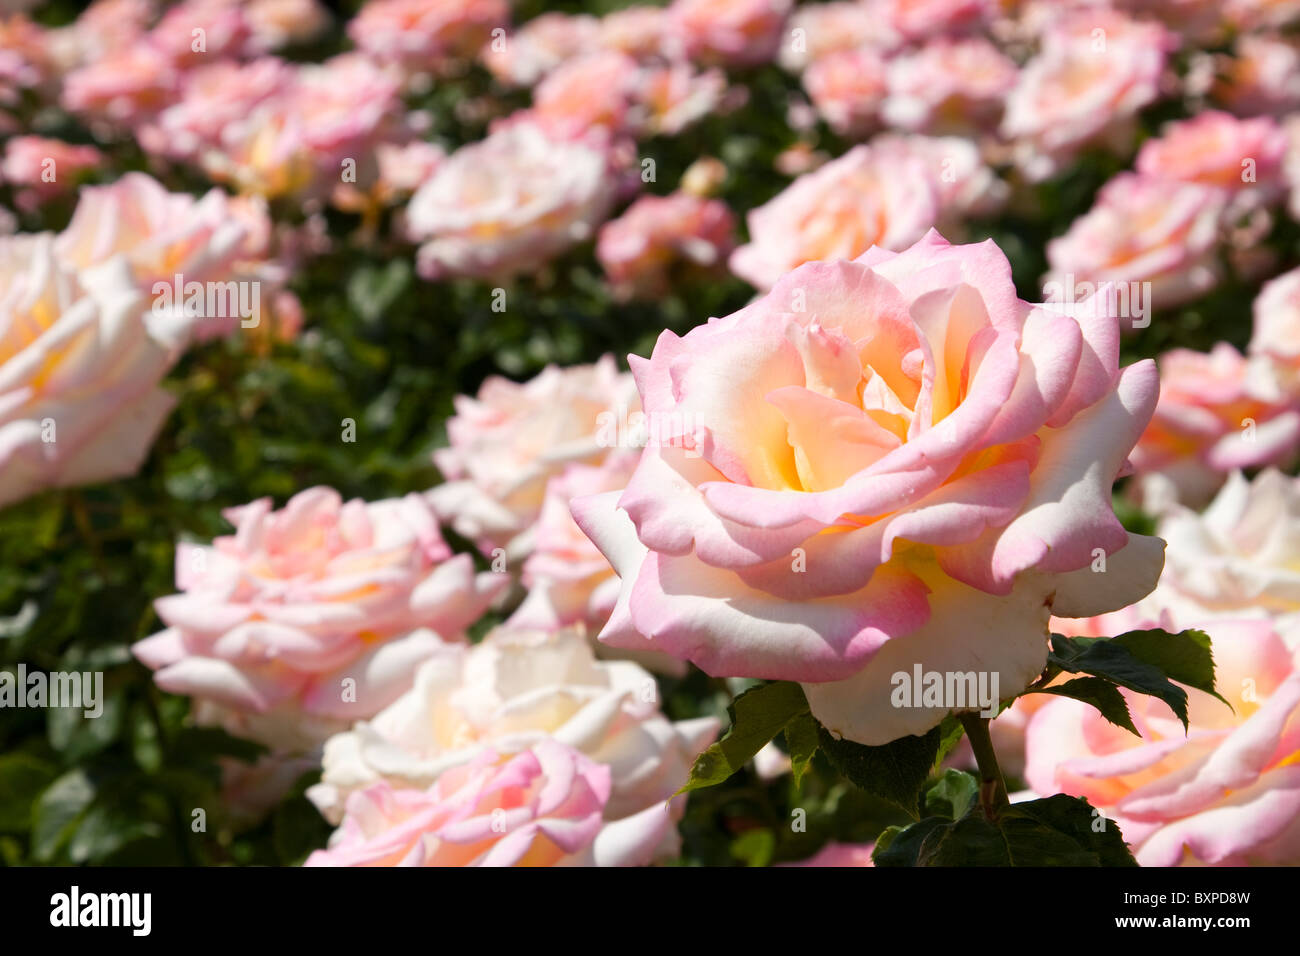 Perception rose in the Queen Mary's Gardens, Regents Park - Stock Image